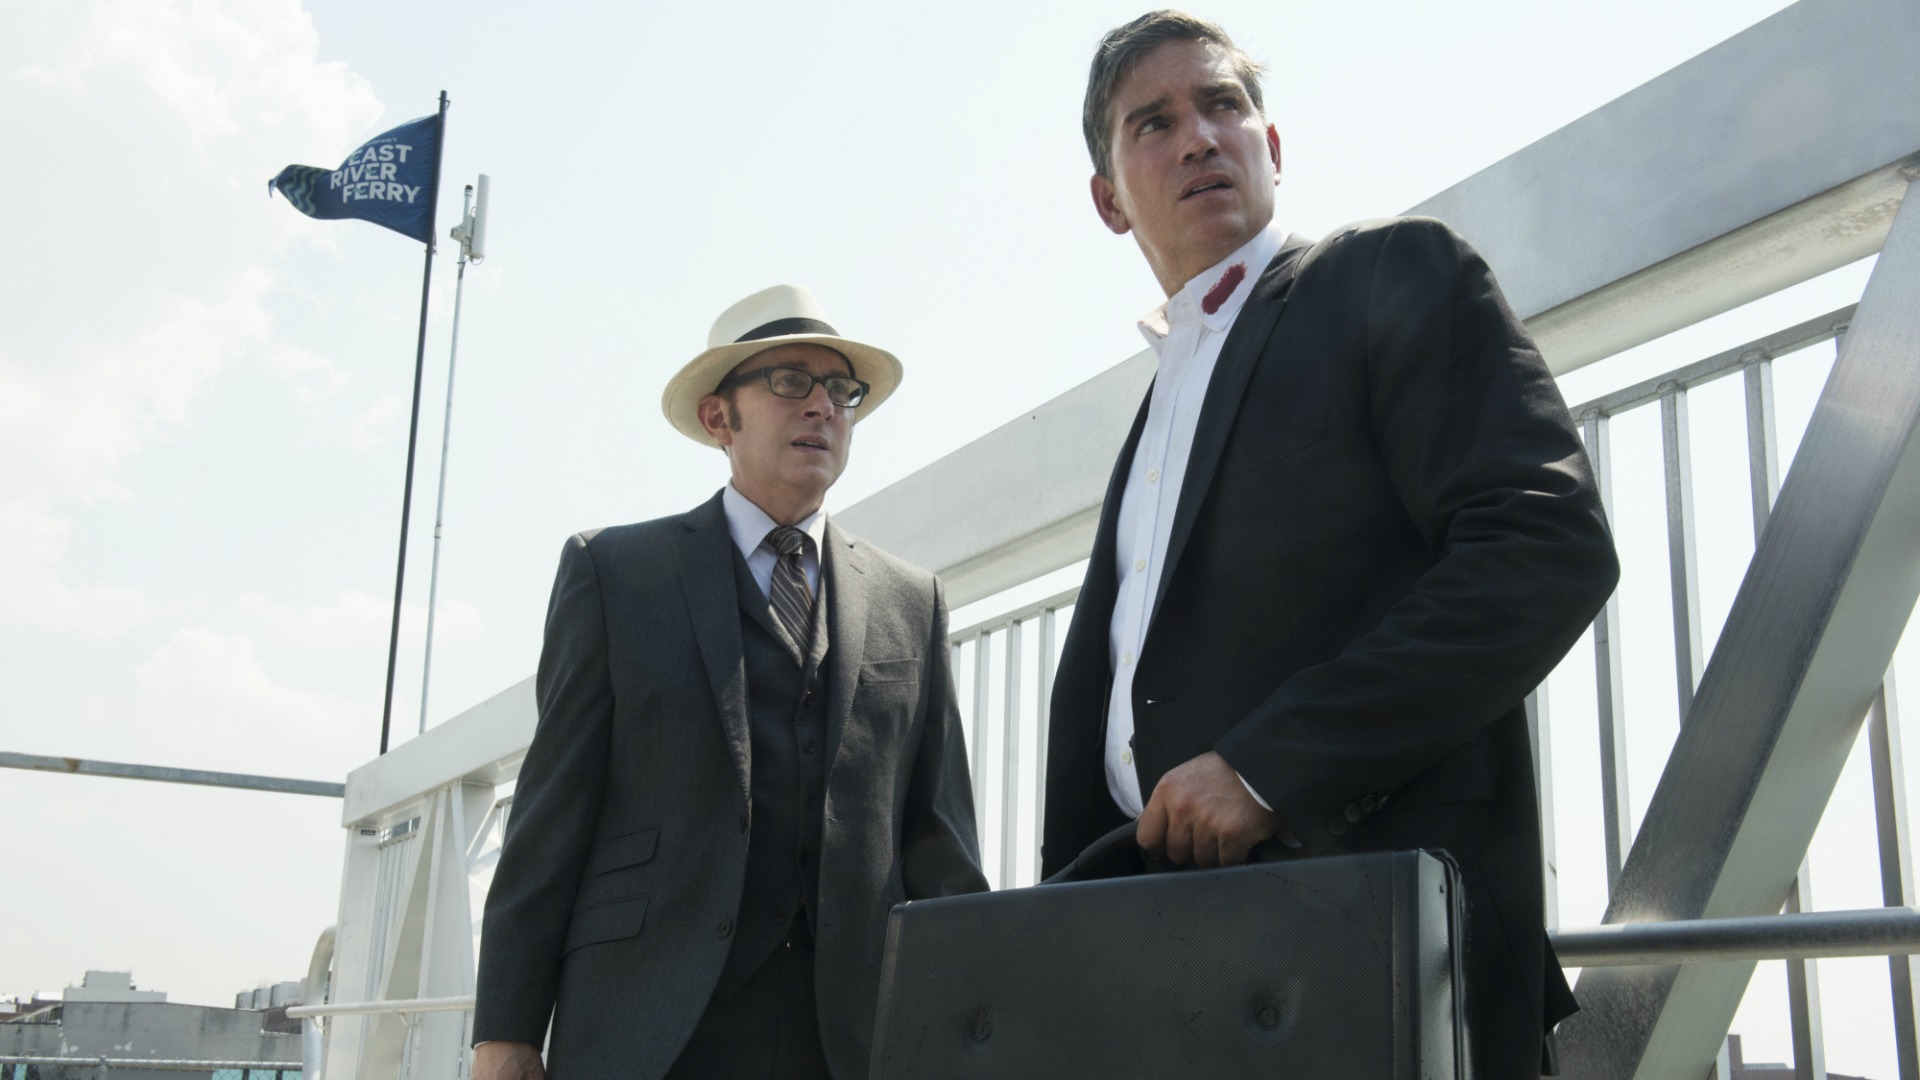 Person Of Interest Season 5 premieres on Tuesday, May 3 at 10/9c.